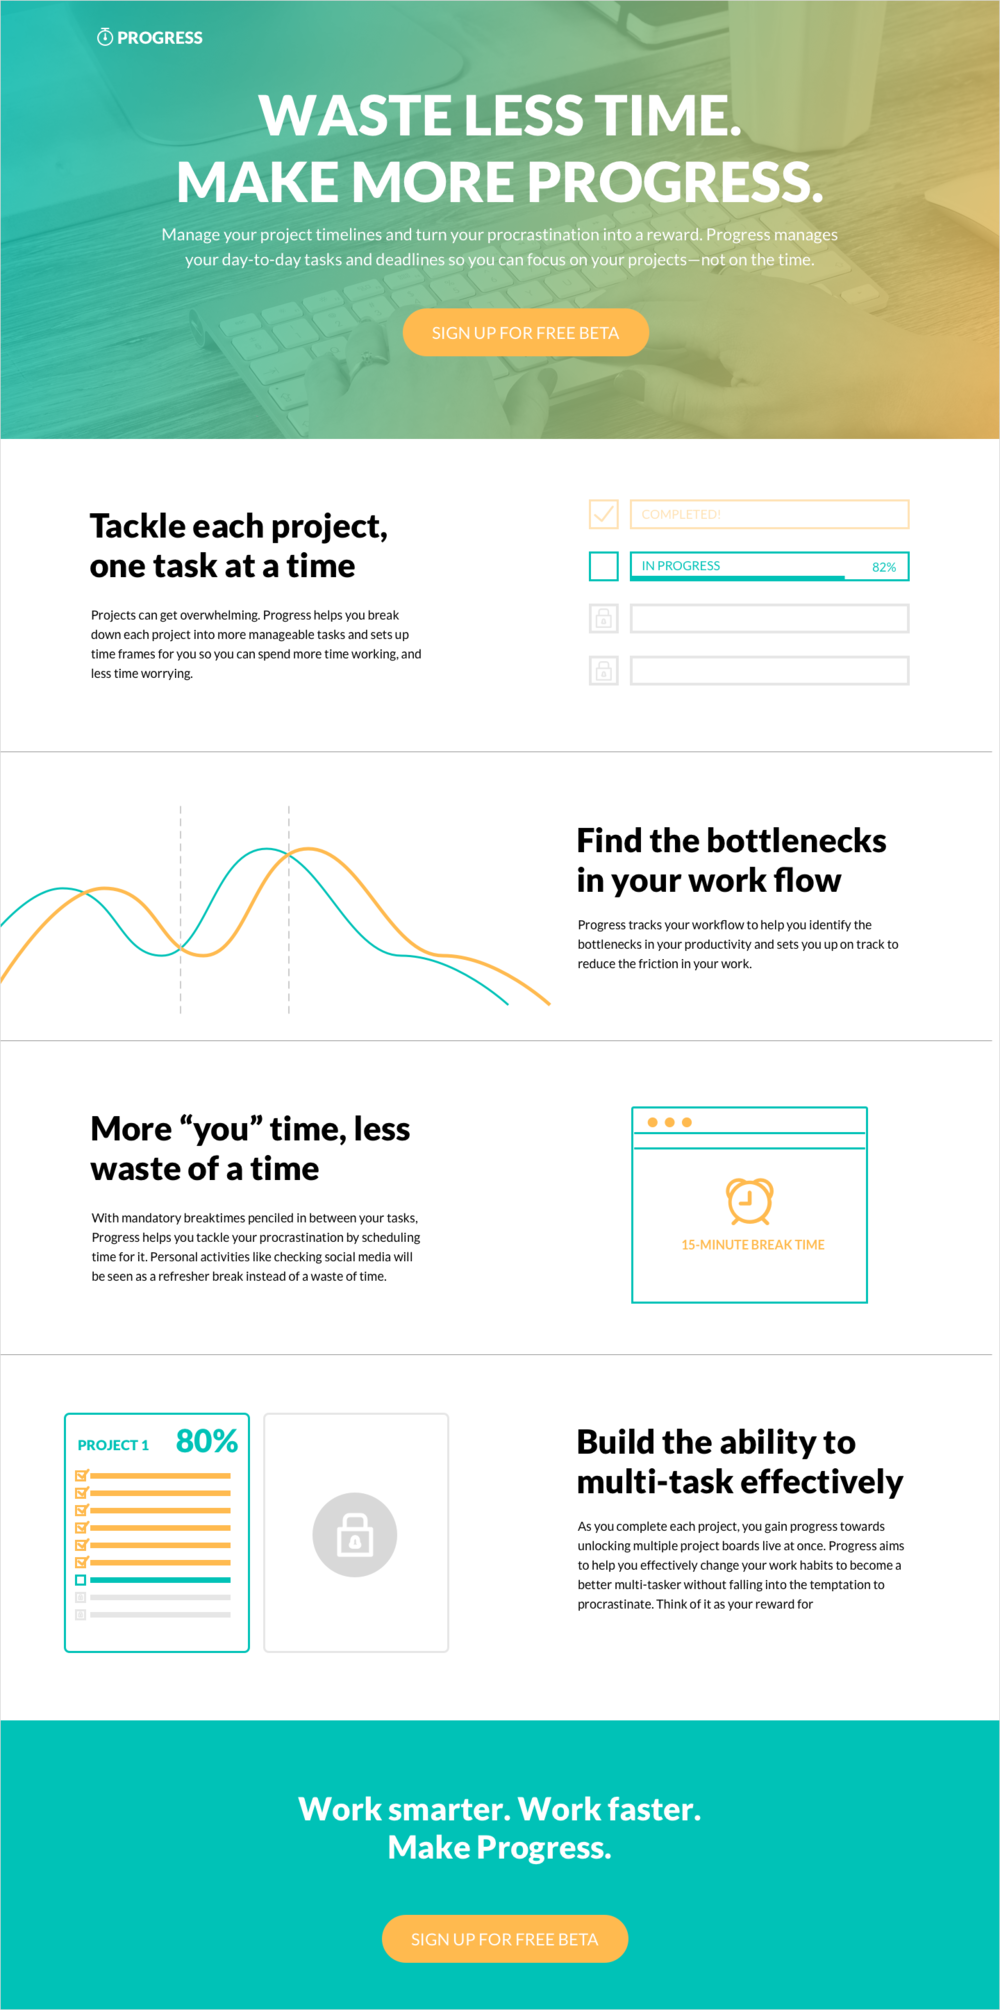 Final iteration of landing page based on landing page test for concept validation